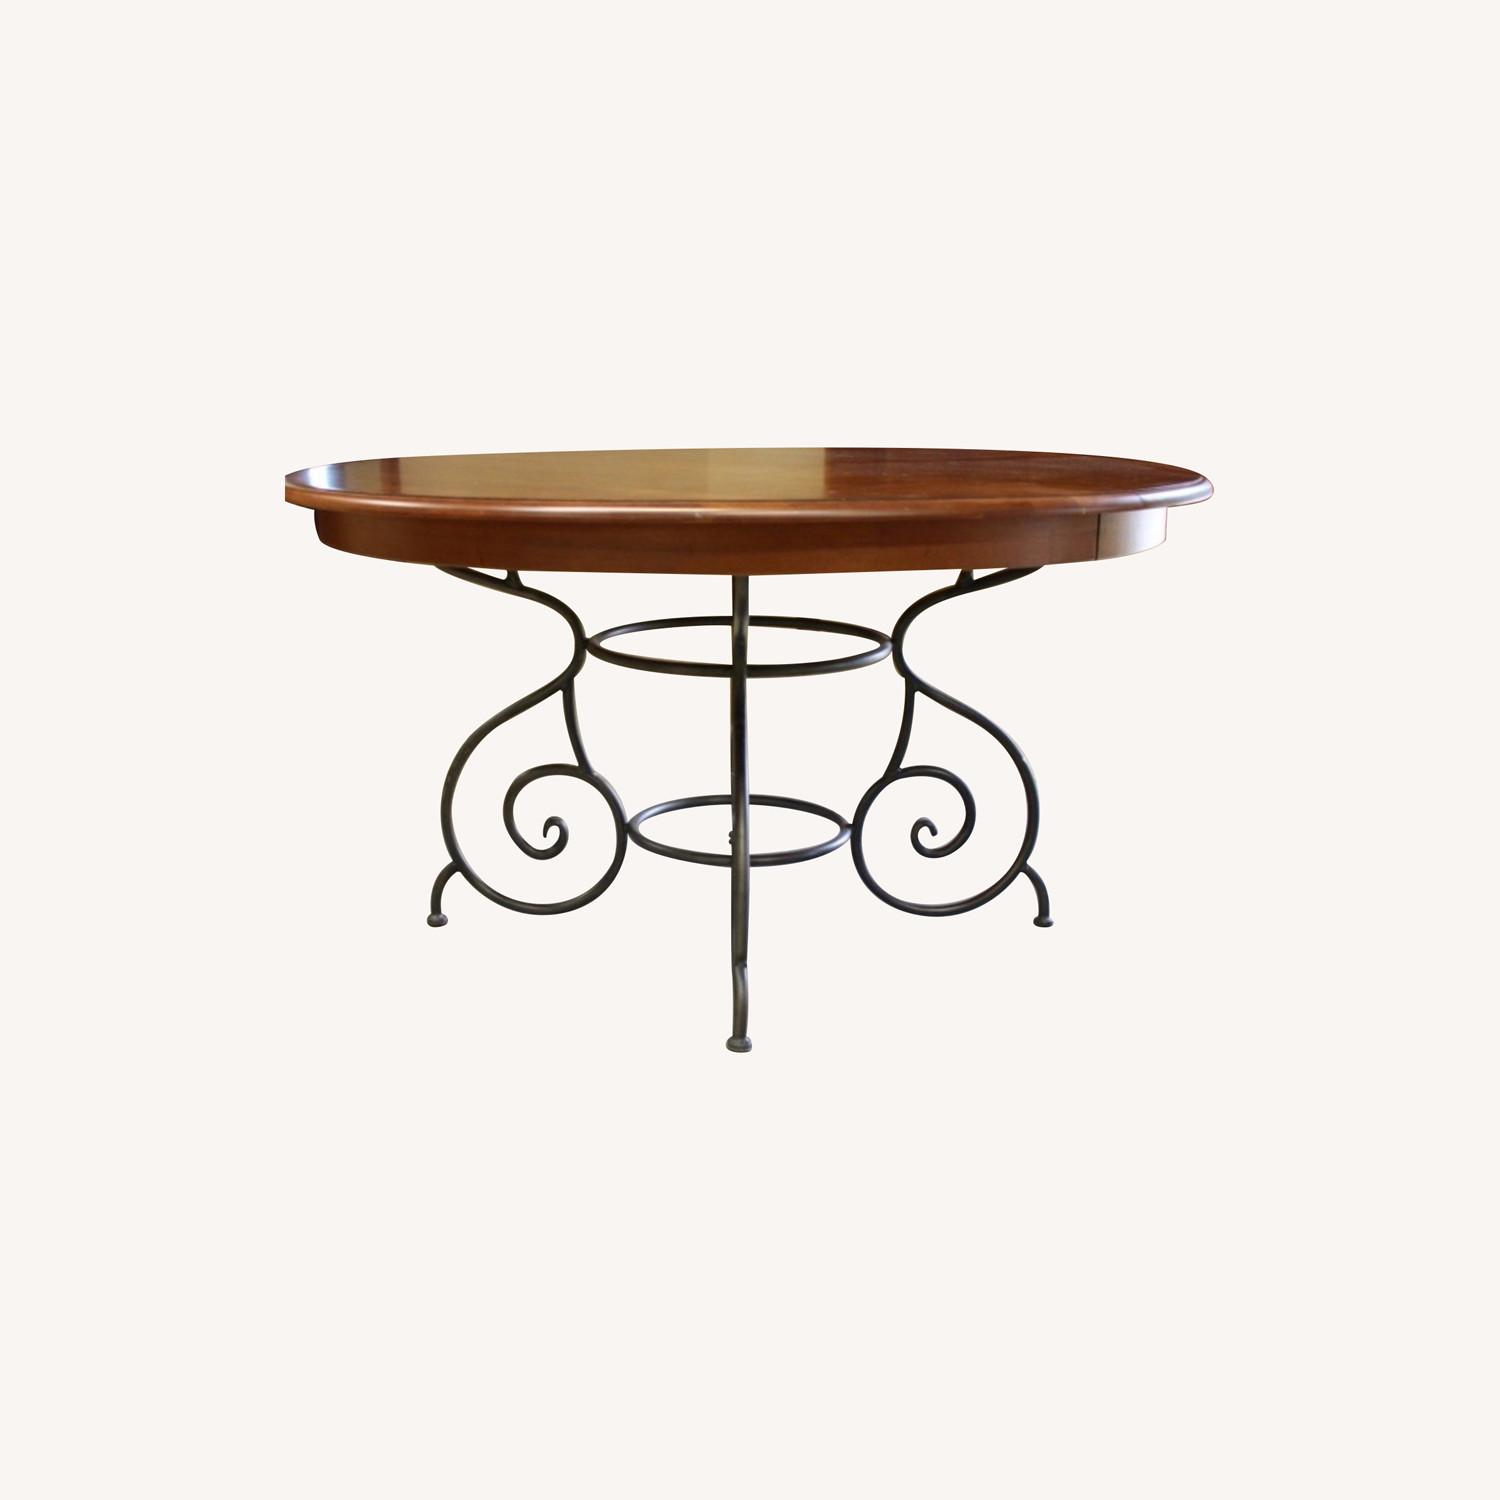 Ethan Allen Maisen Dining Table - image-0